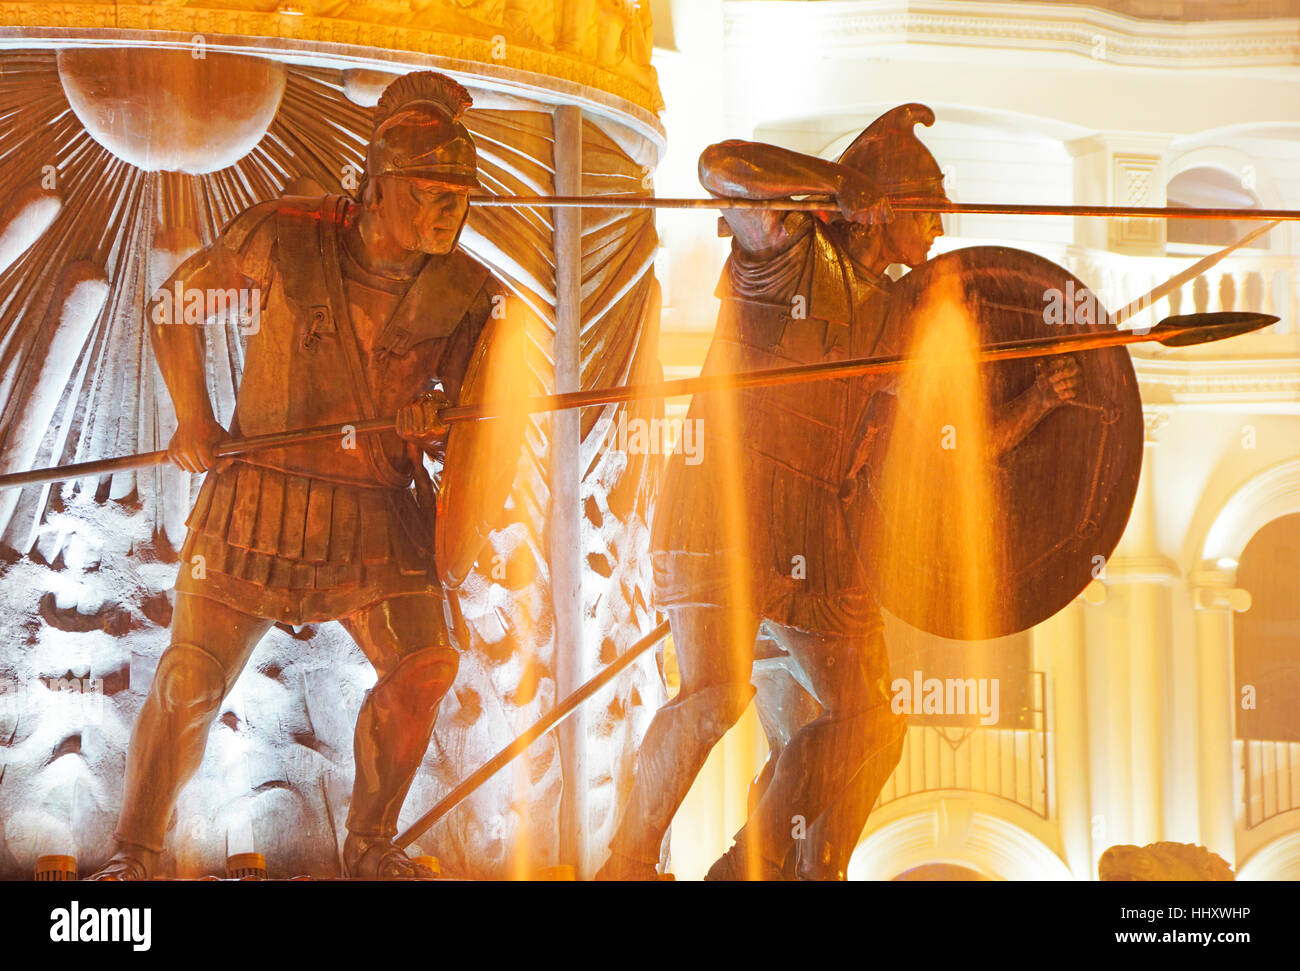 Statues of Macedonian soldiers on monument to Alexander the Great in Skopje city square. - Stock Image